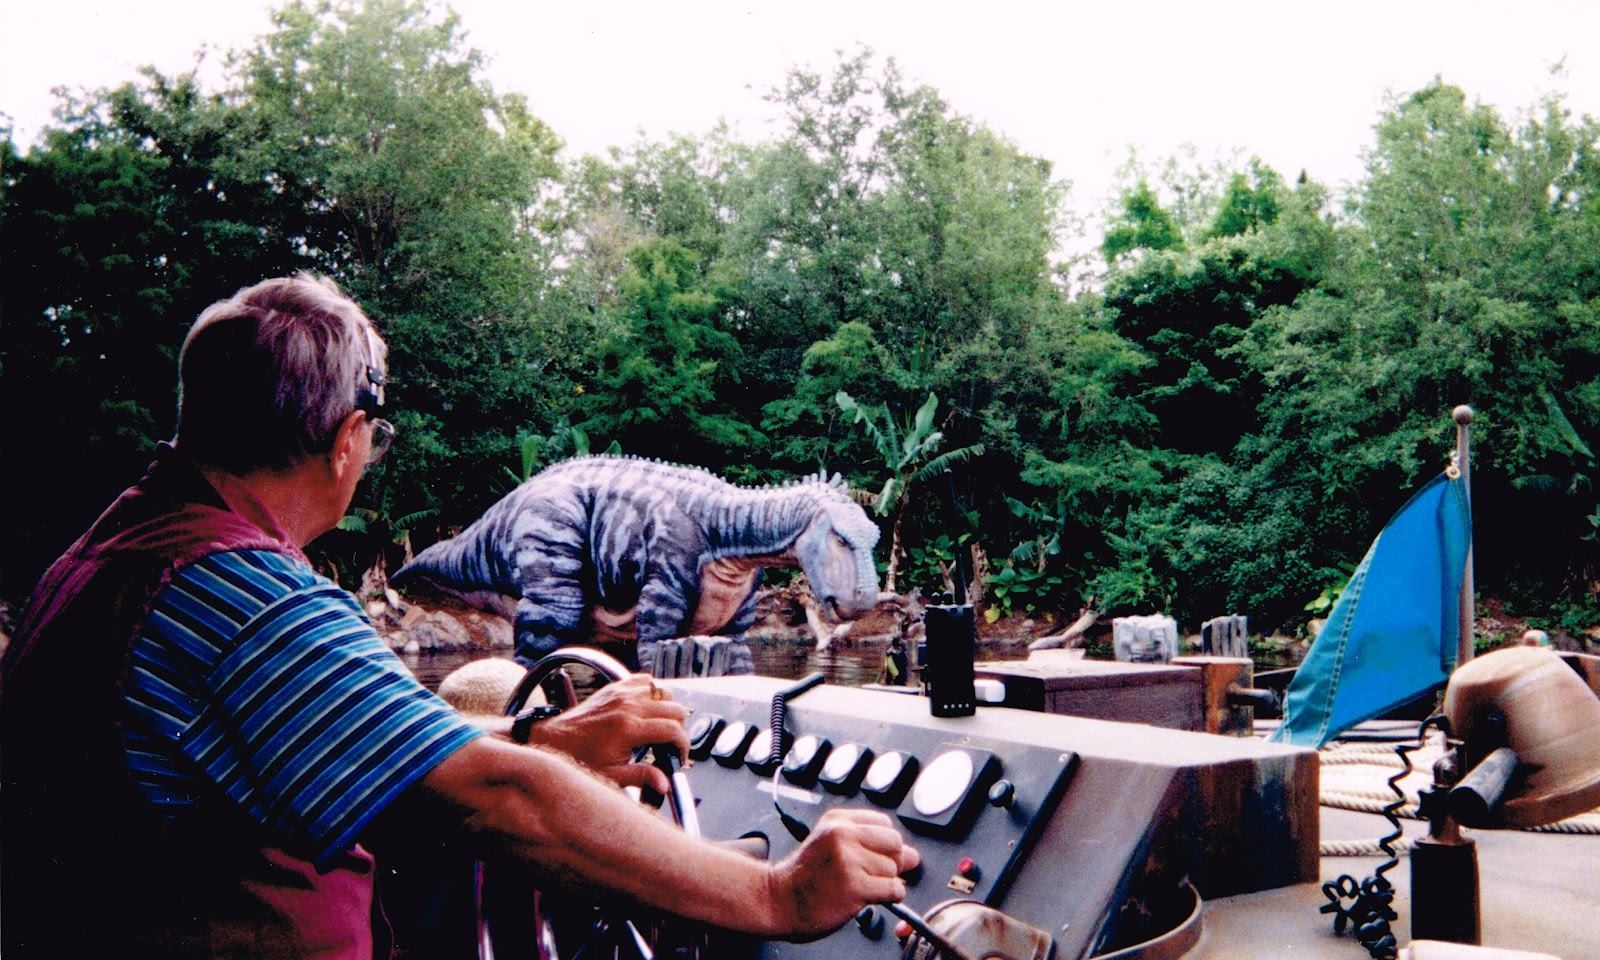 Discovery river boat ride he now sits in front of dinosaur the ride